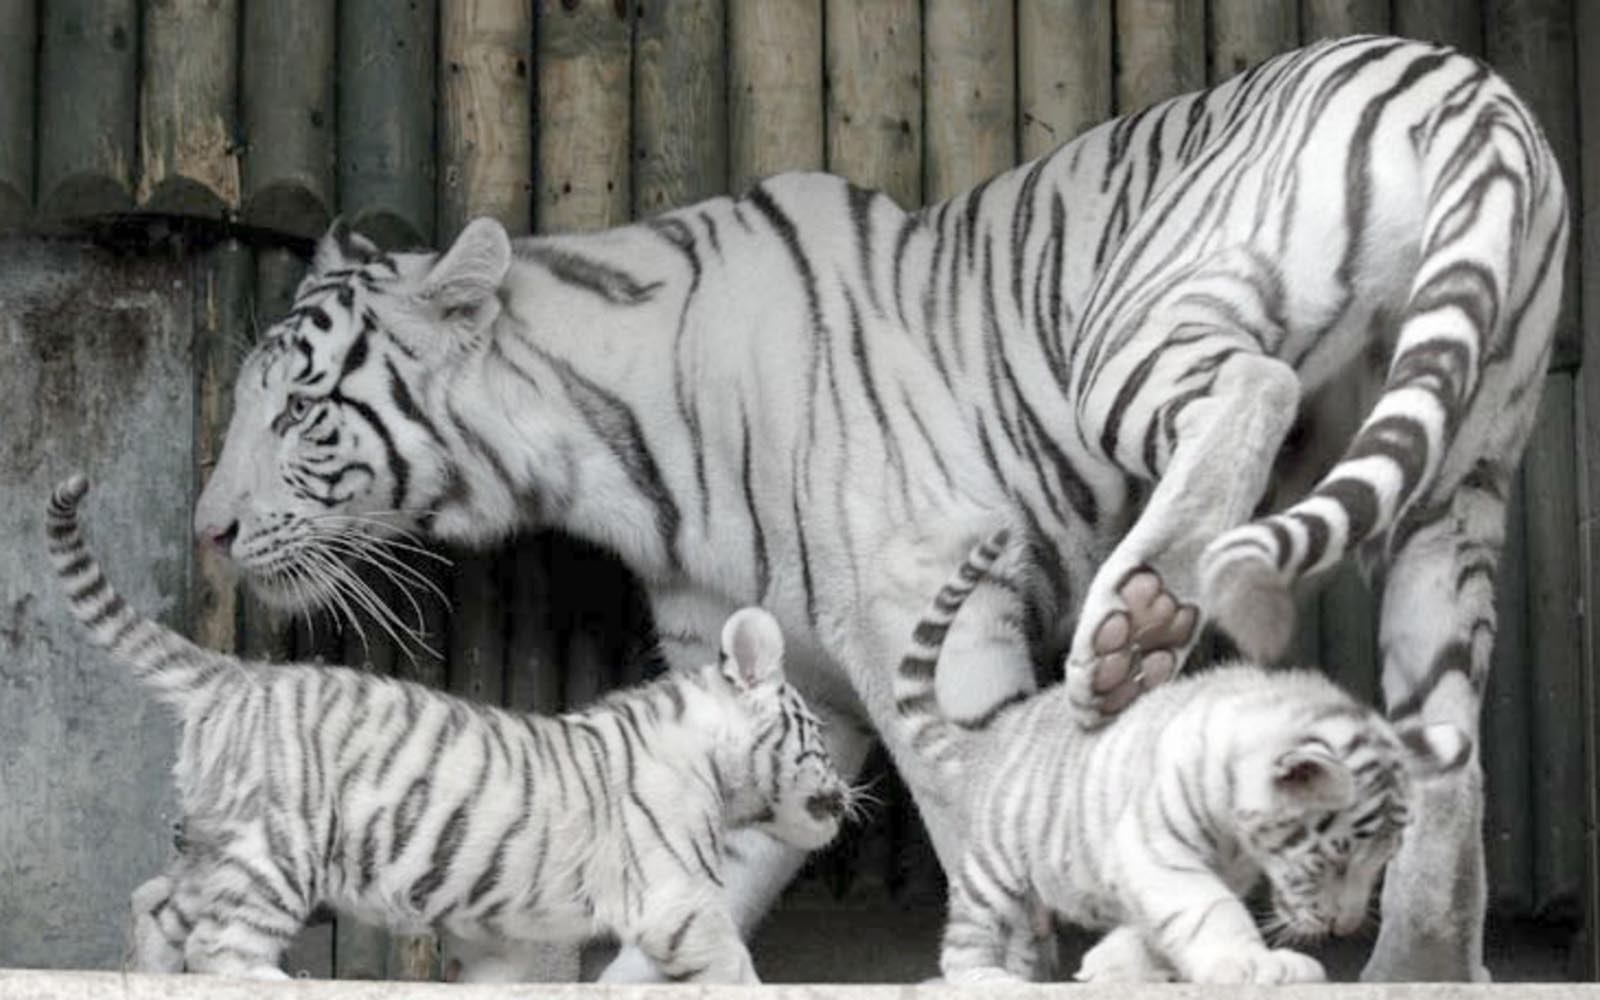 Cute Lion Cubs Hd Wallpapers Baby White Tigers Wallpapers 2013 Wallpapers